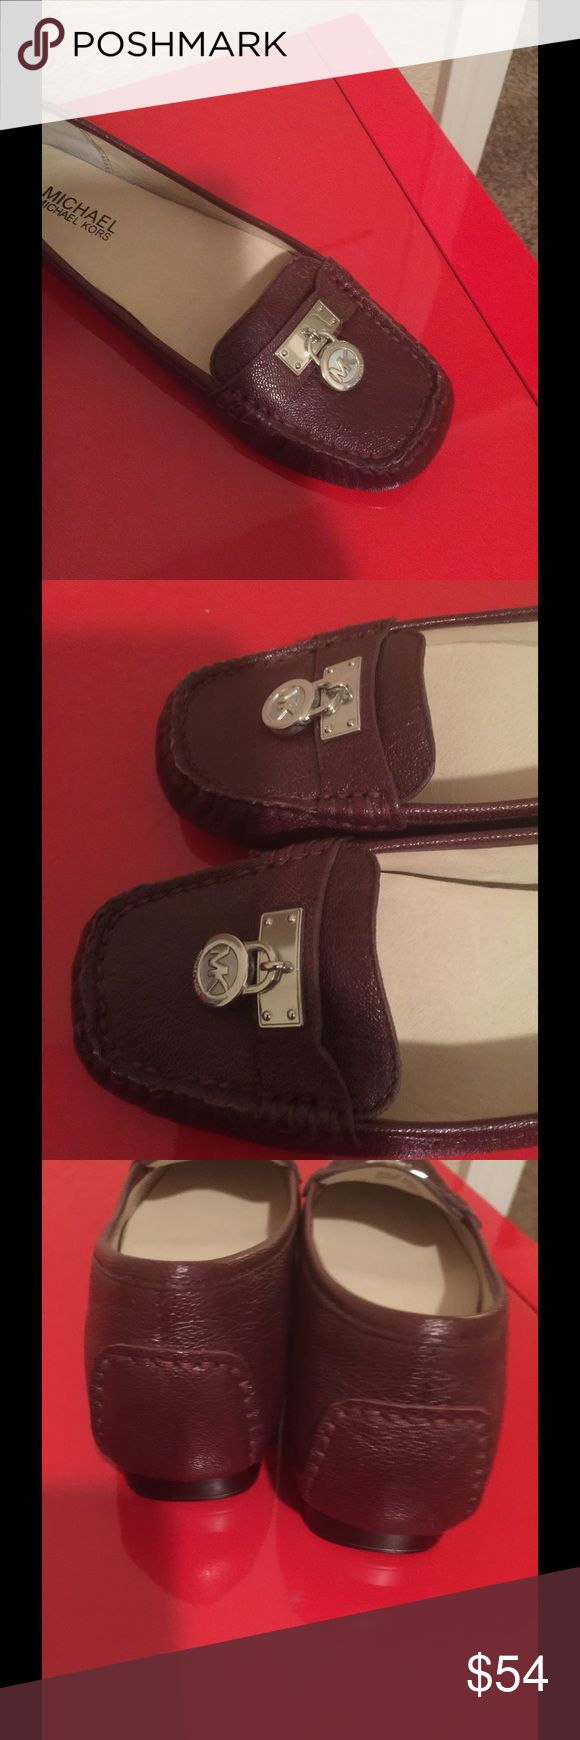 """NWT dark red MK shoes silver 6 Cute flats with a little heel lift 1"""" Dark red like red red wine Size 6 Michael Kors Shoes Flats & Loafers"""